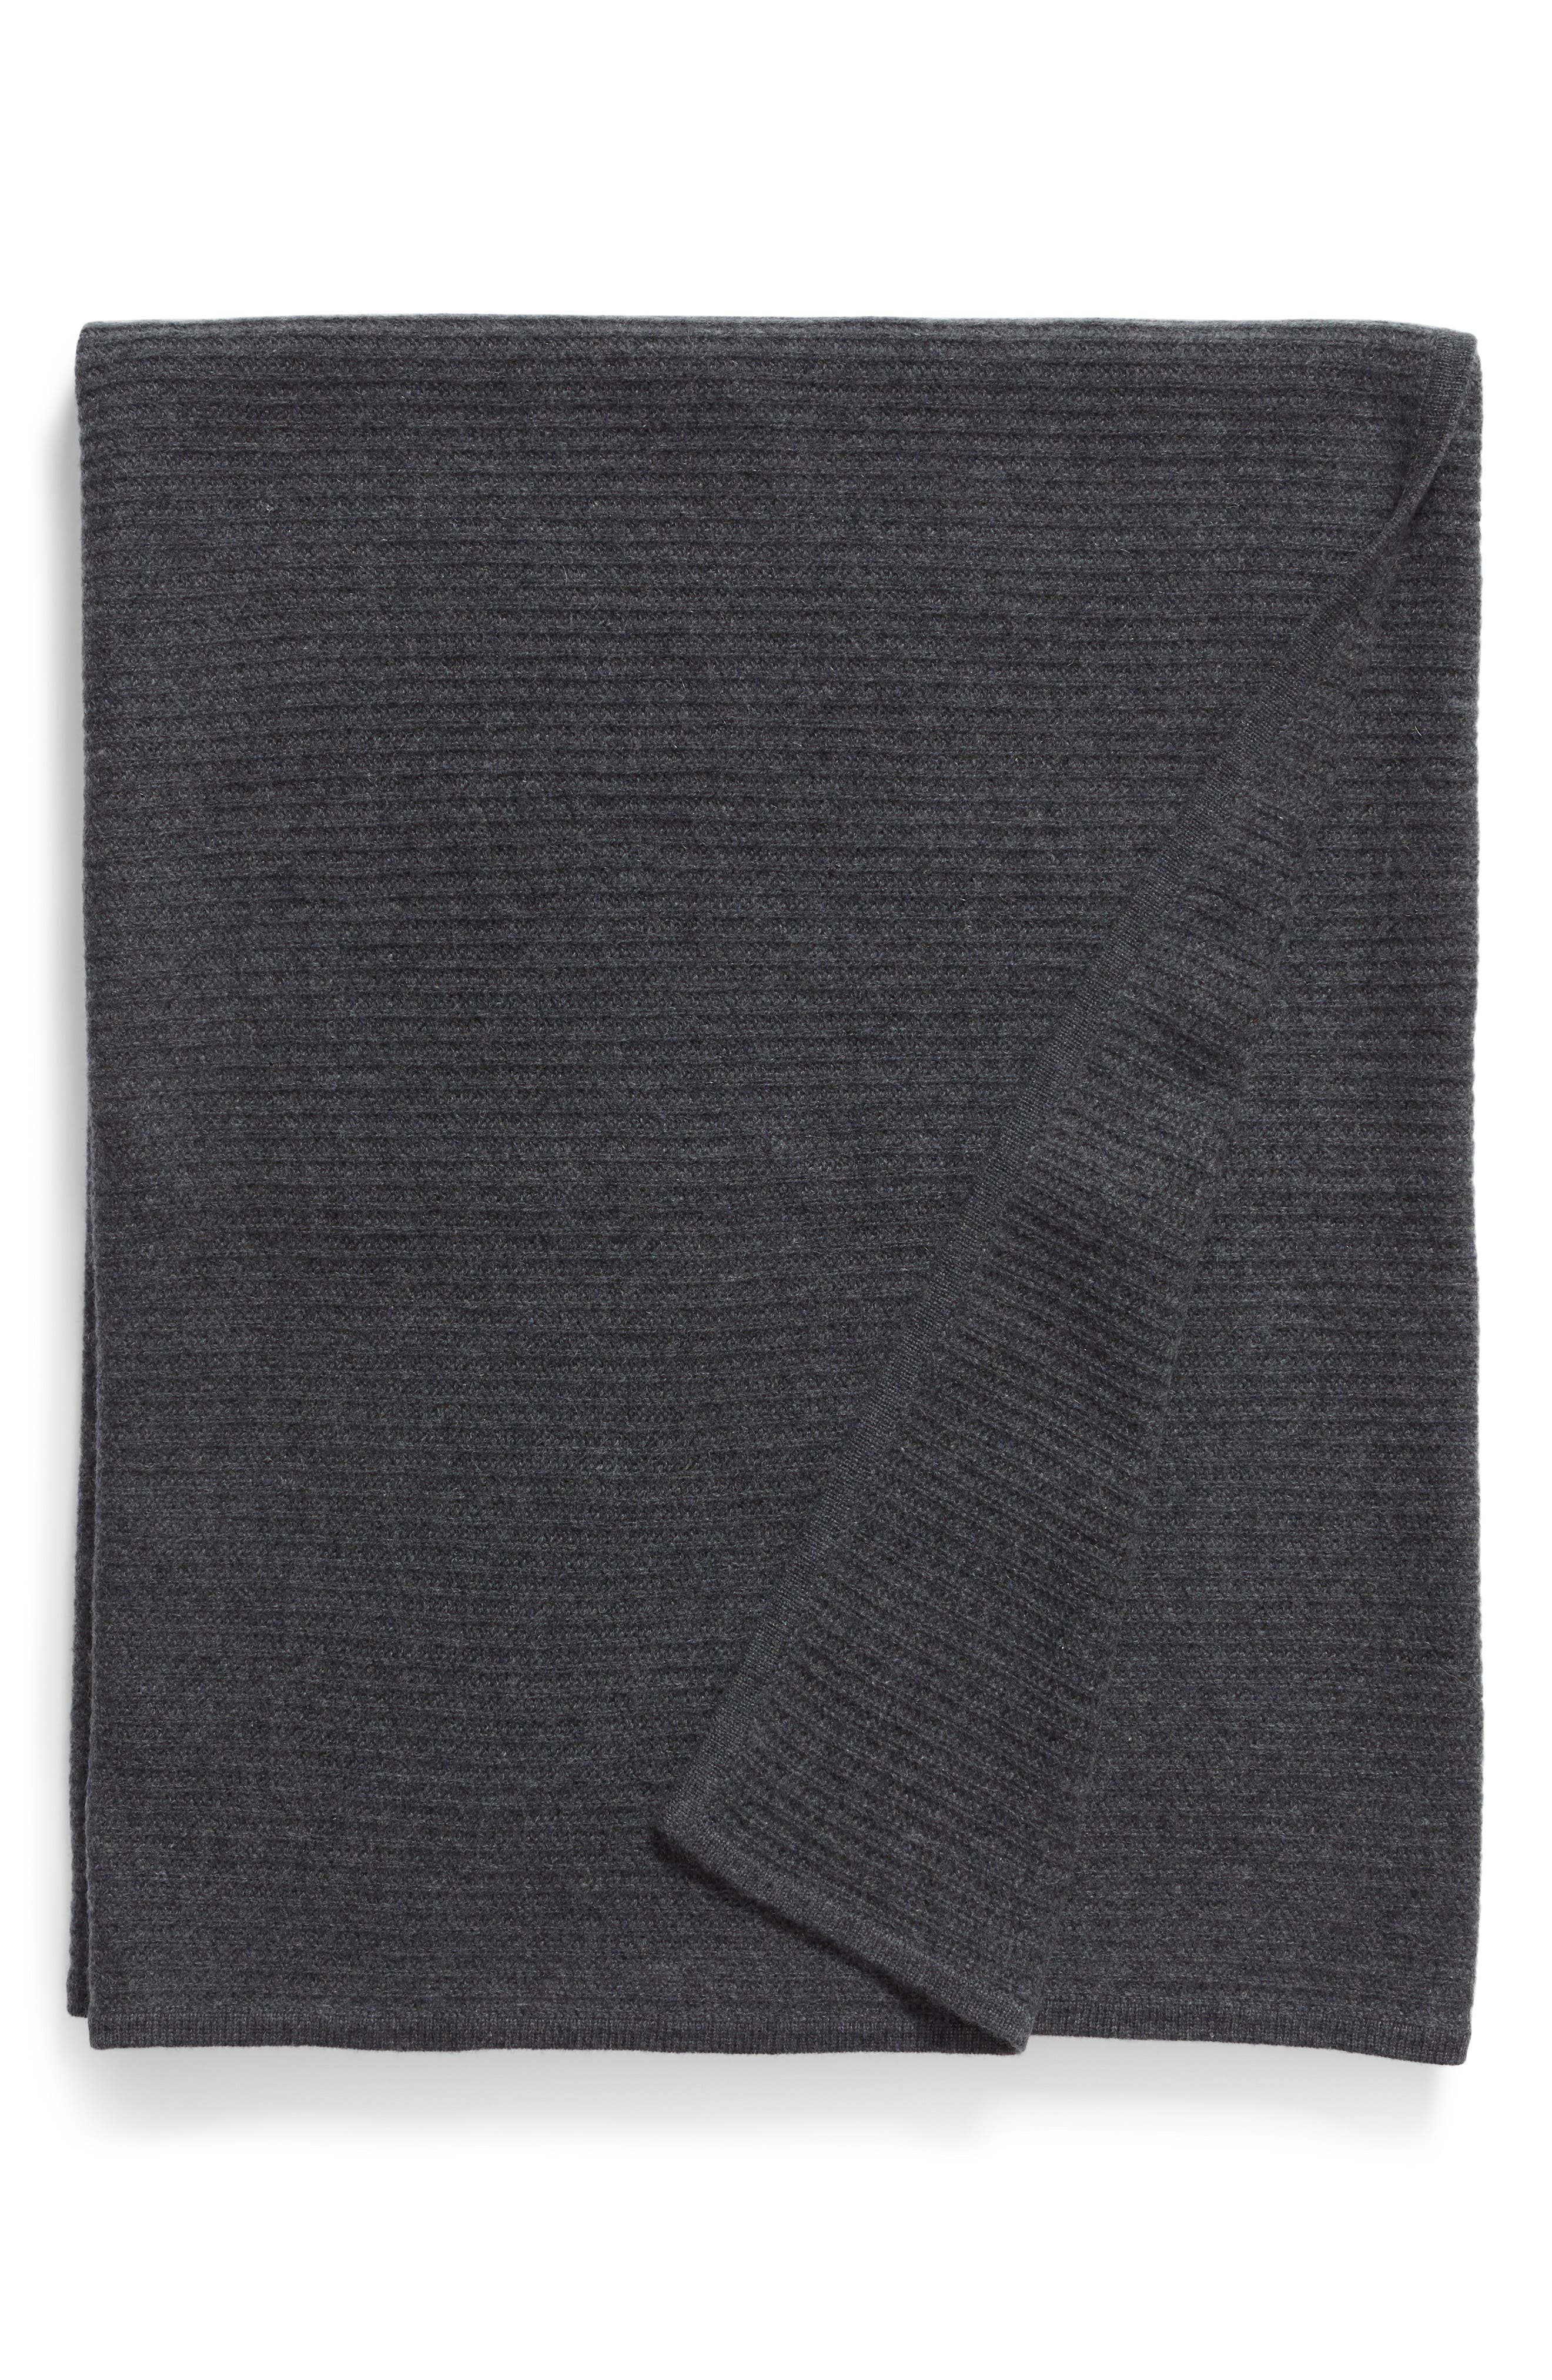 NORDSTROM SIGNATURE, Ribbed Cashmere Throw, Main thumbnail 1, color, CHARCOAL HEATHER